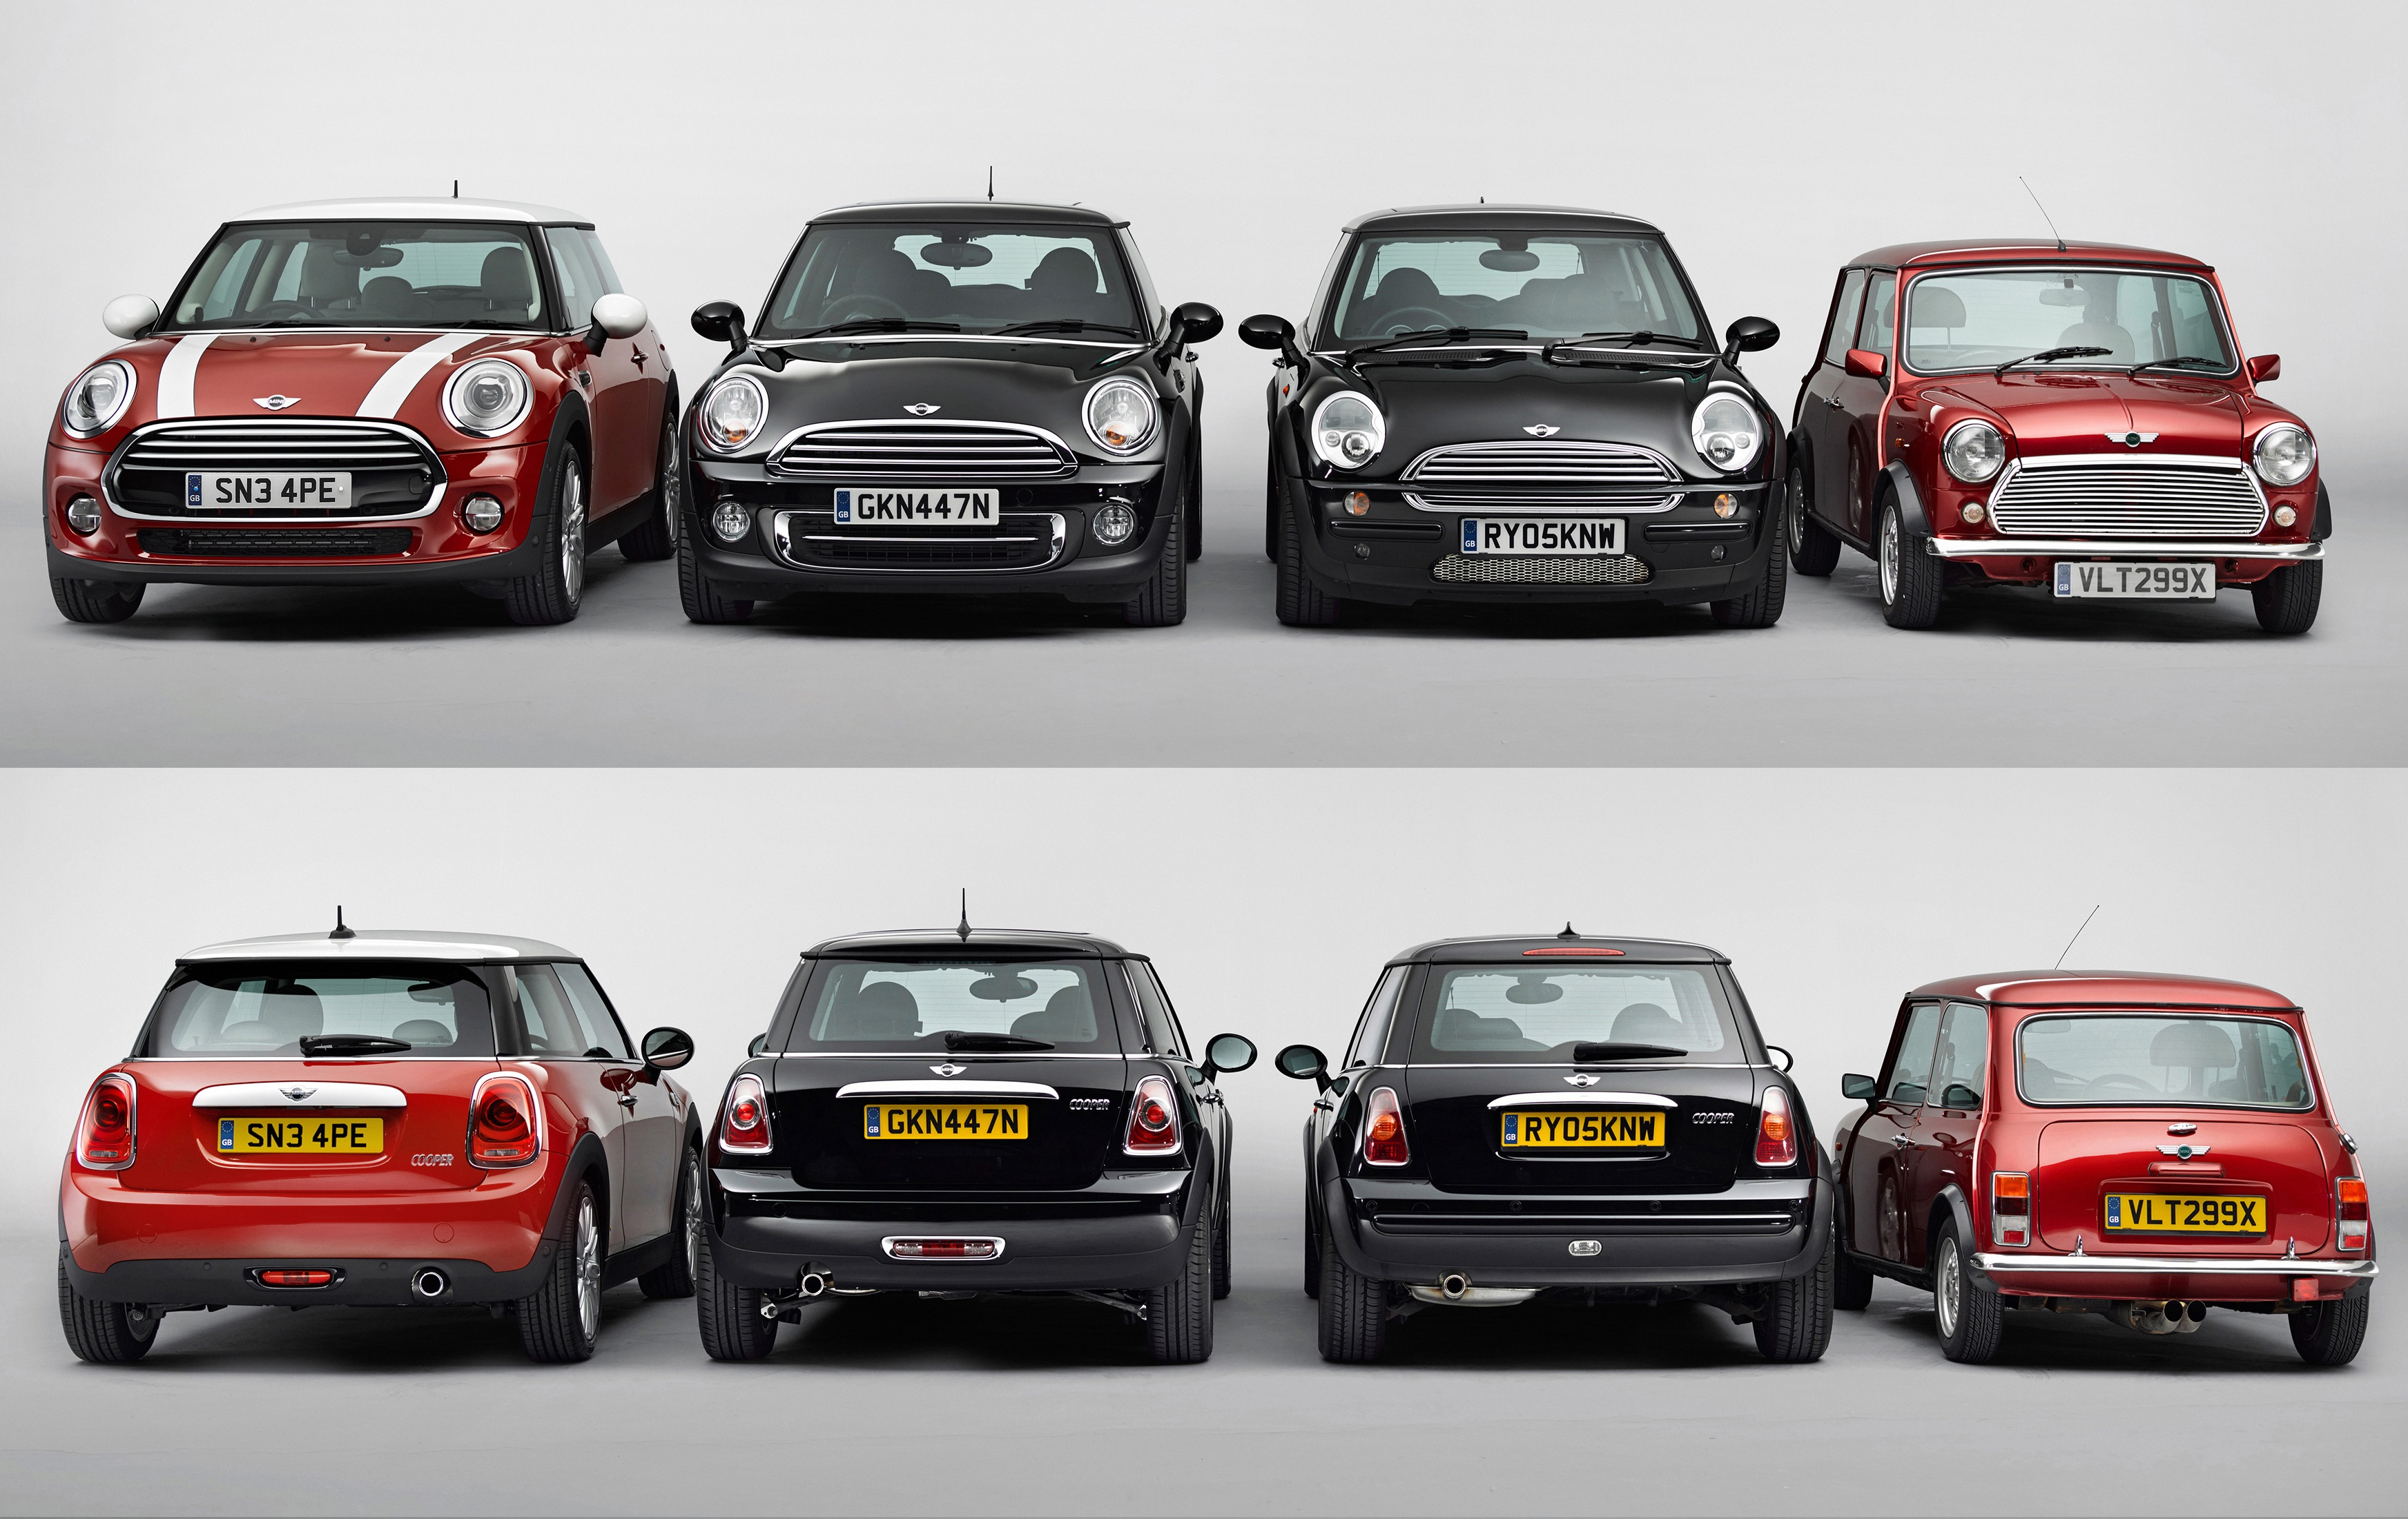 F56 MINI Cooper S UK USA Review Evolution Or Revolution JCW